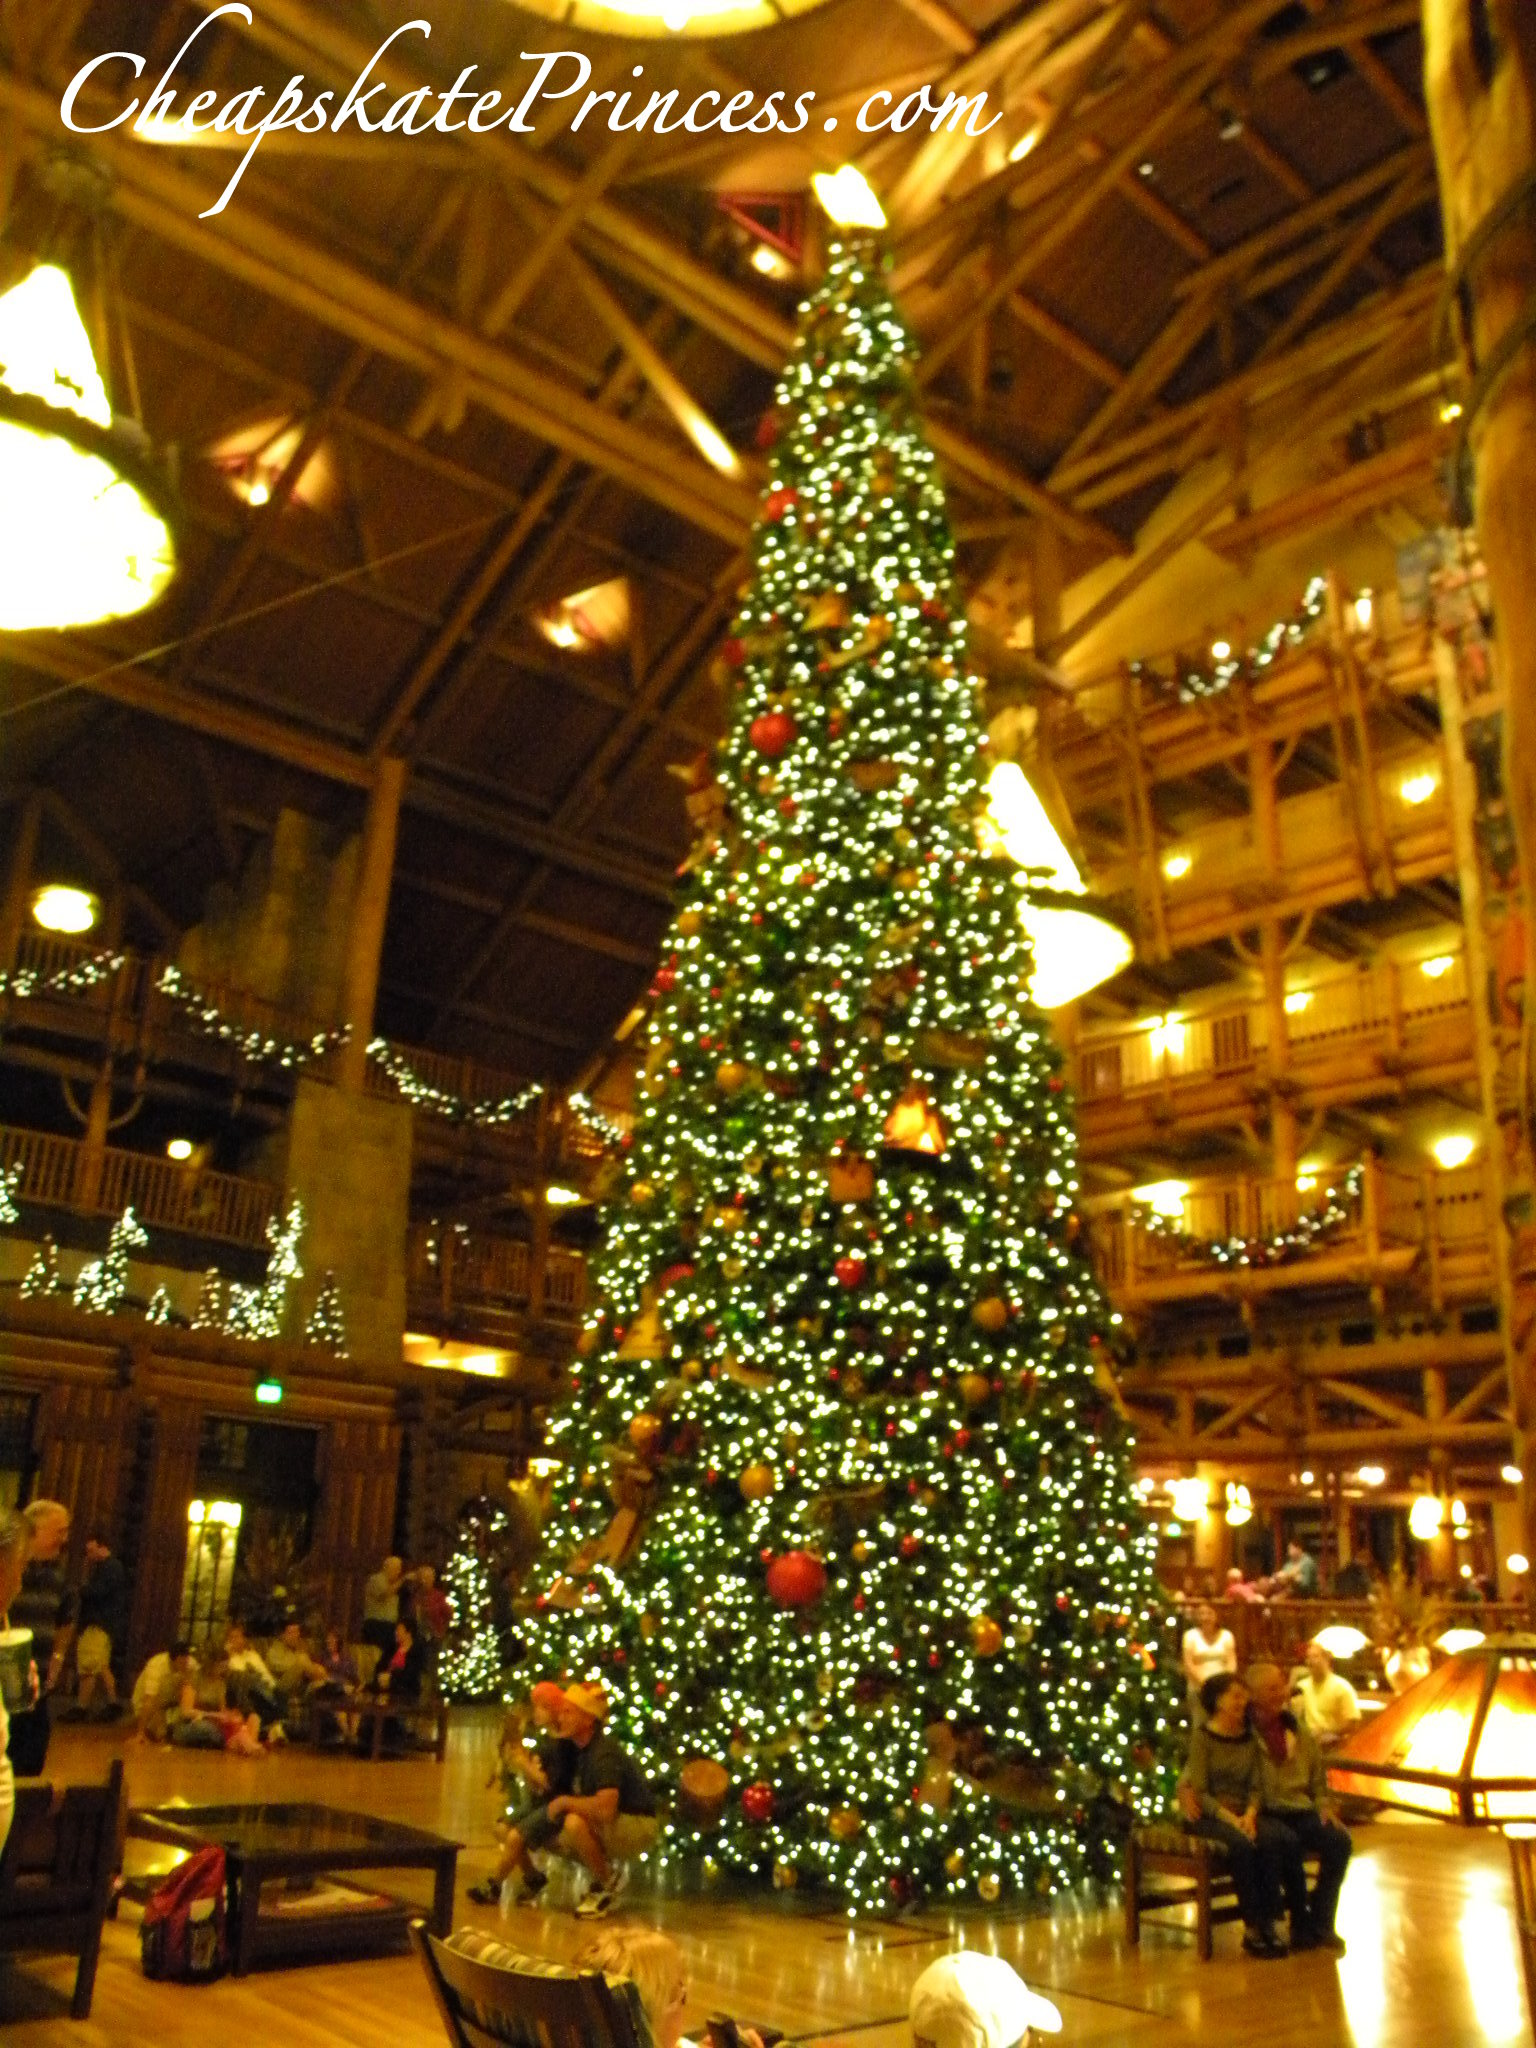 indoor rocking chairs chair covers rental prices free activities at disney's wilderness lodge: a cheapskate princess guide - ...